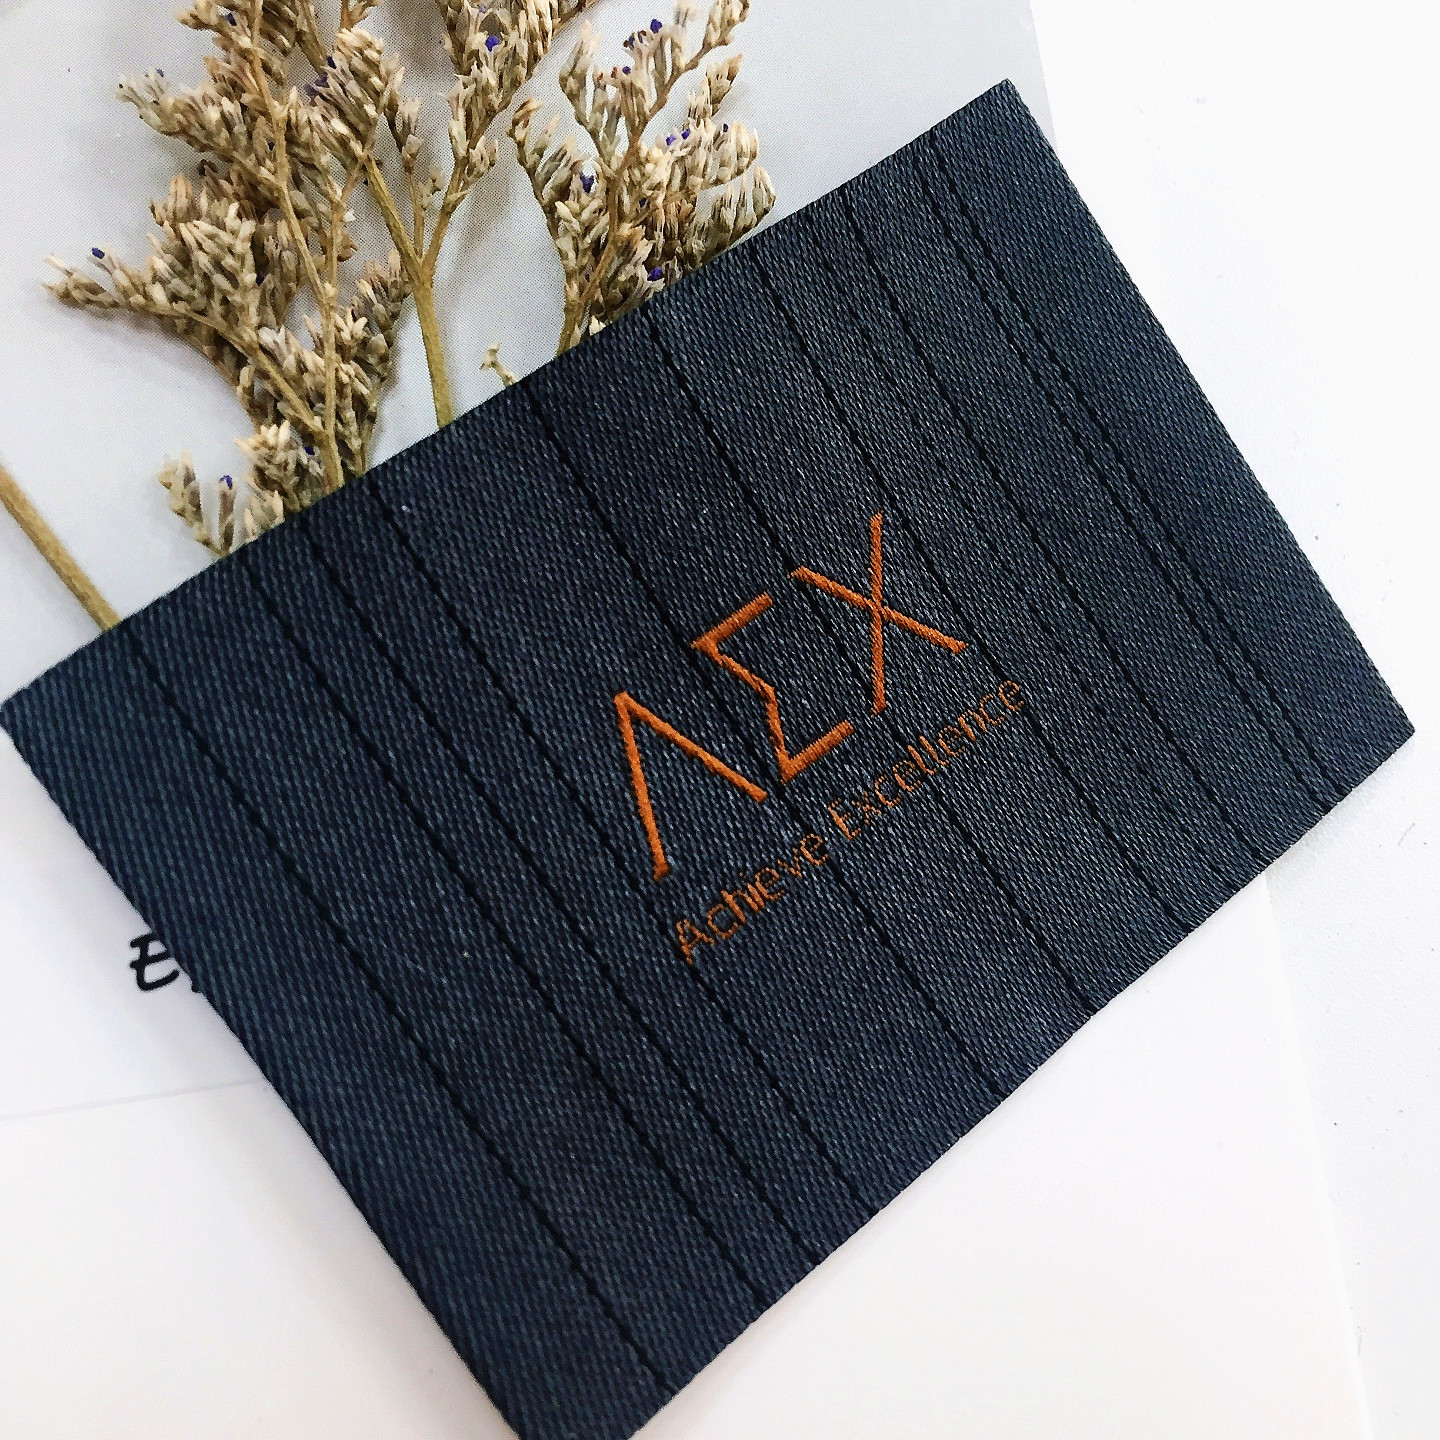 wholesale custom woven main clothing Golden line labels for coat or all clothing etiquette textile108037